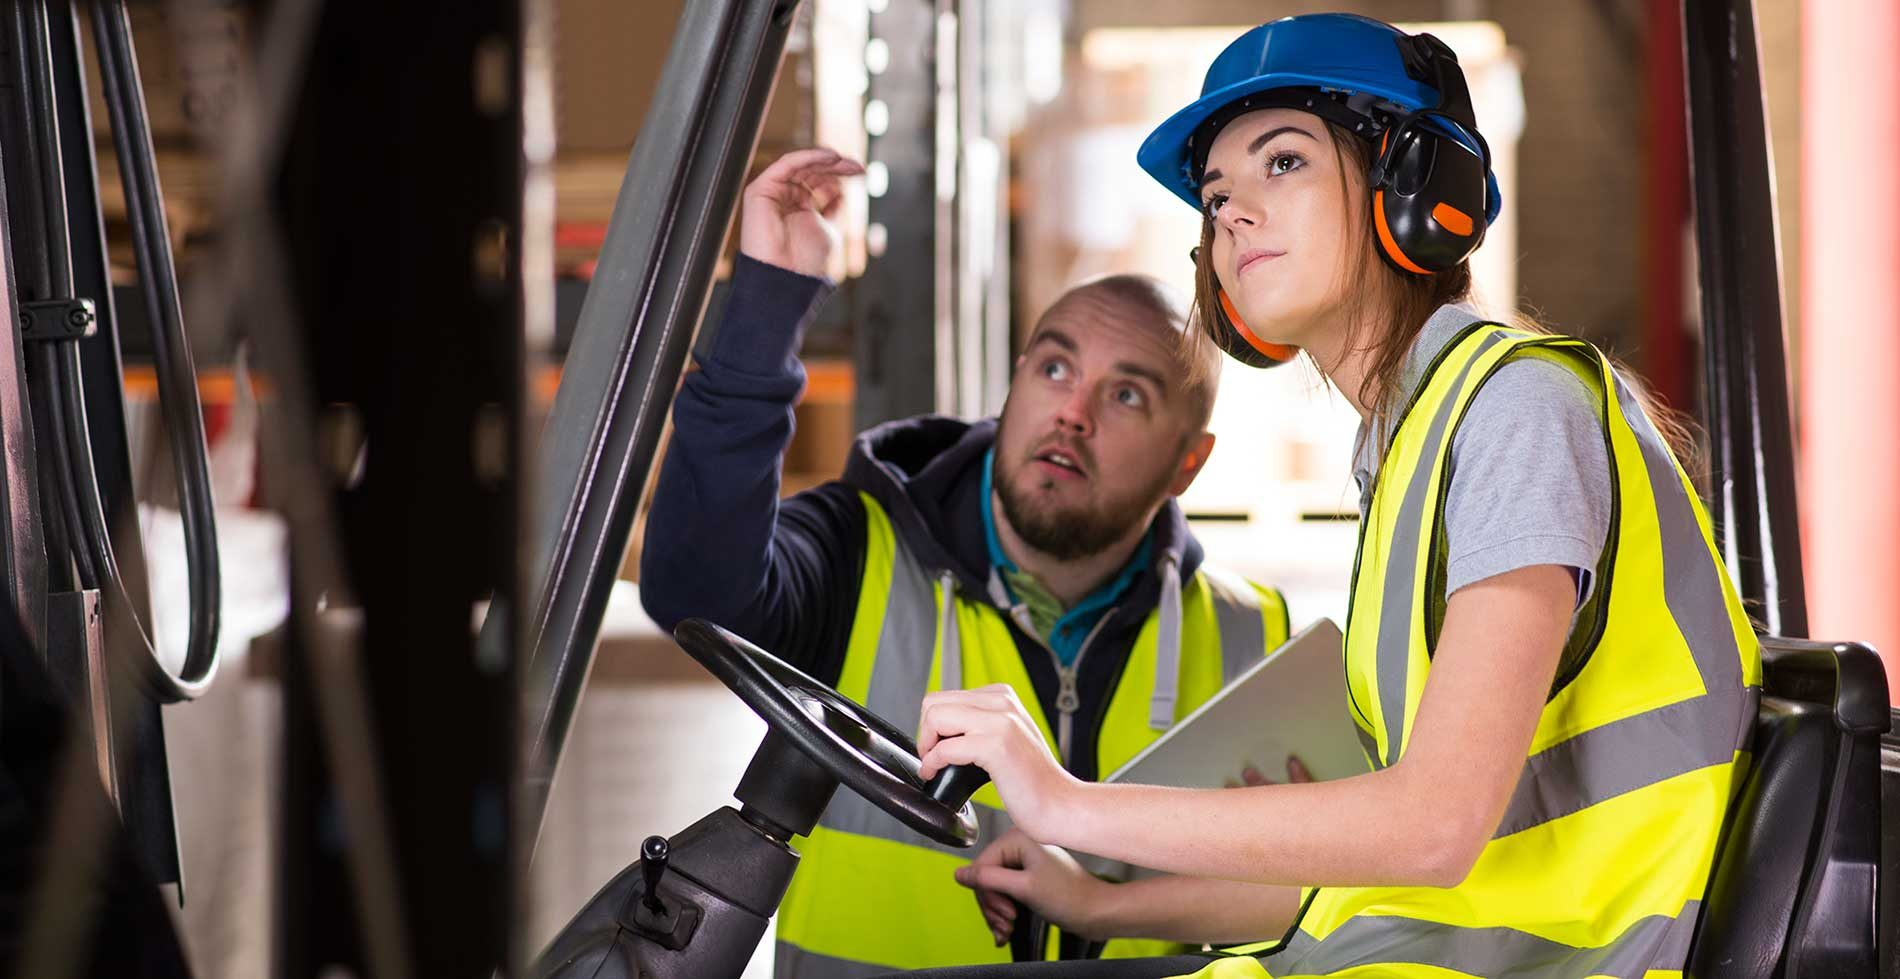 Martin's Forklift Training delivers forklift training at your business in Vancouver, Surrey, and elsewhere